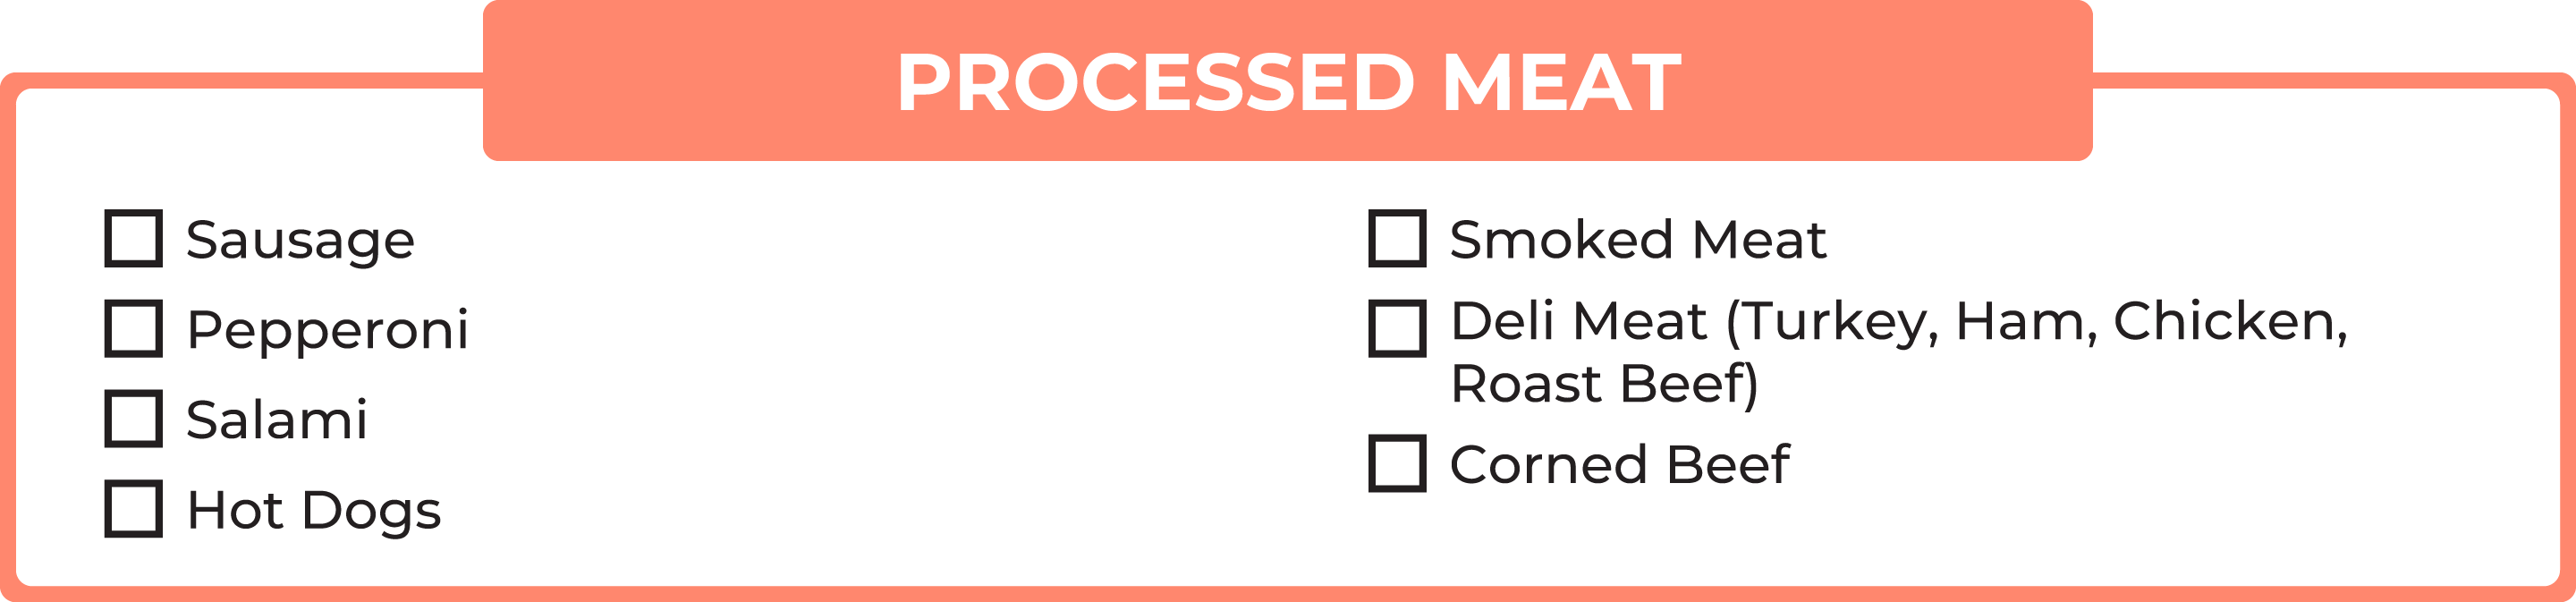 No carb foods: Processed meat